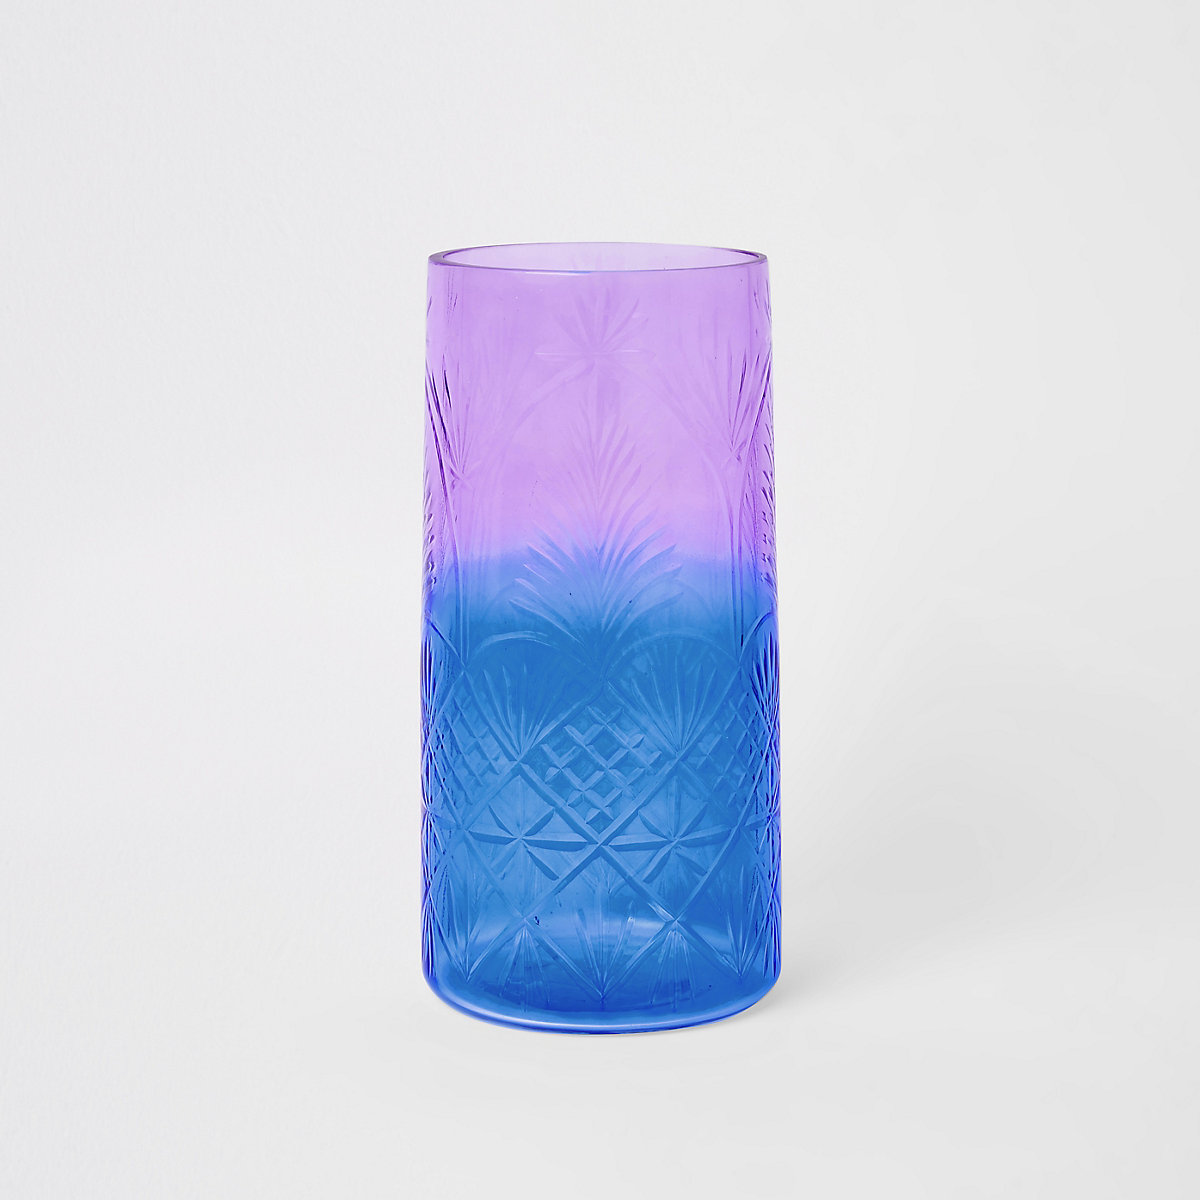 Ombre decorative glass vase